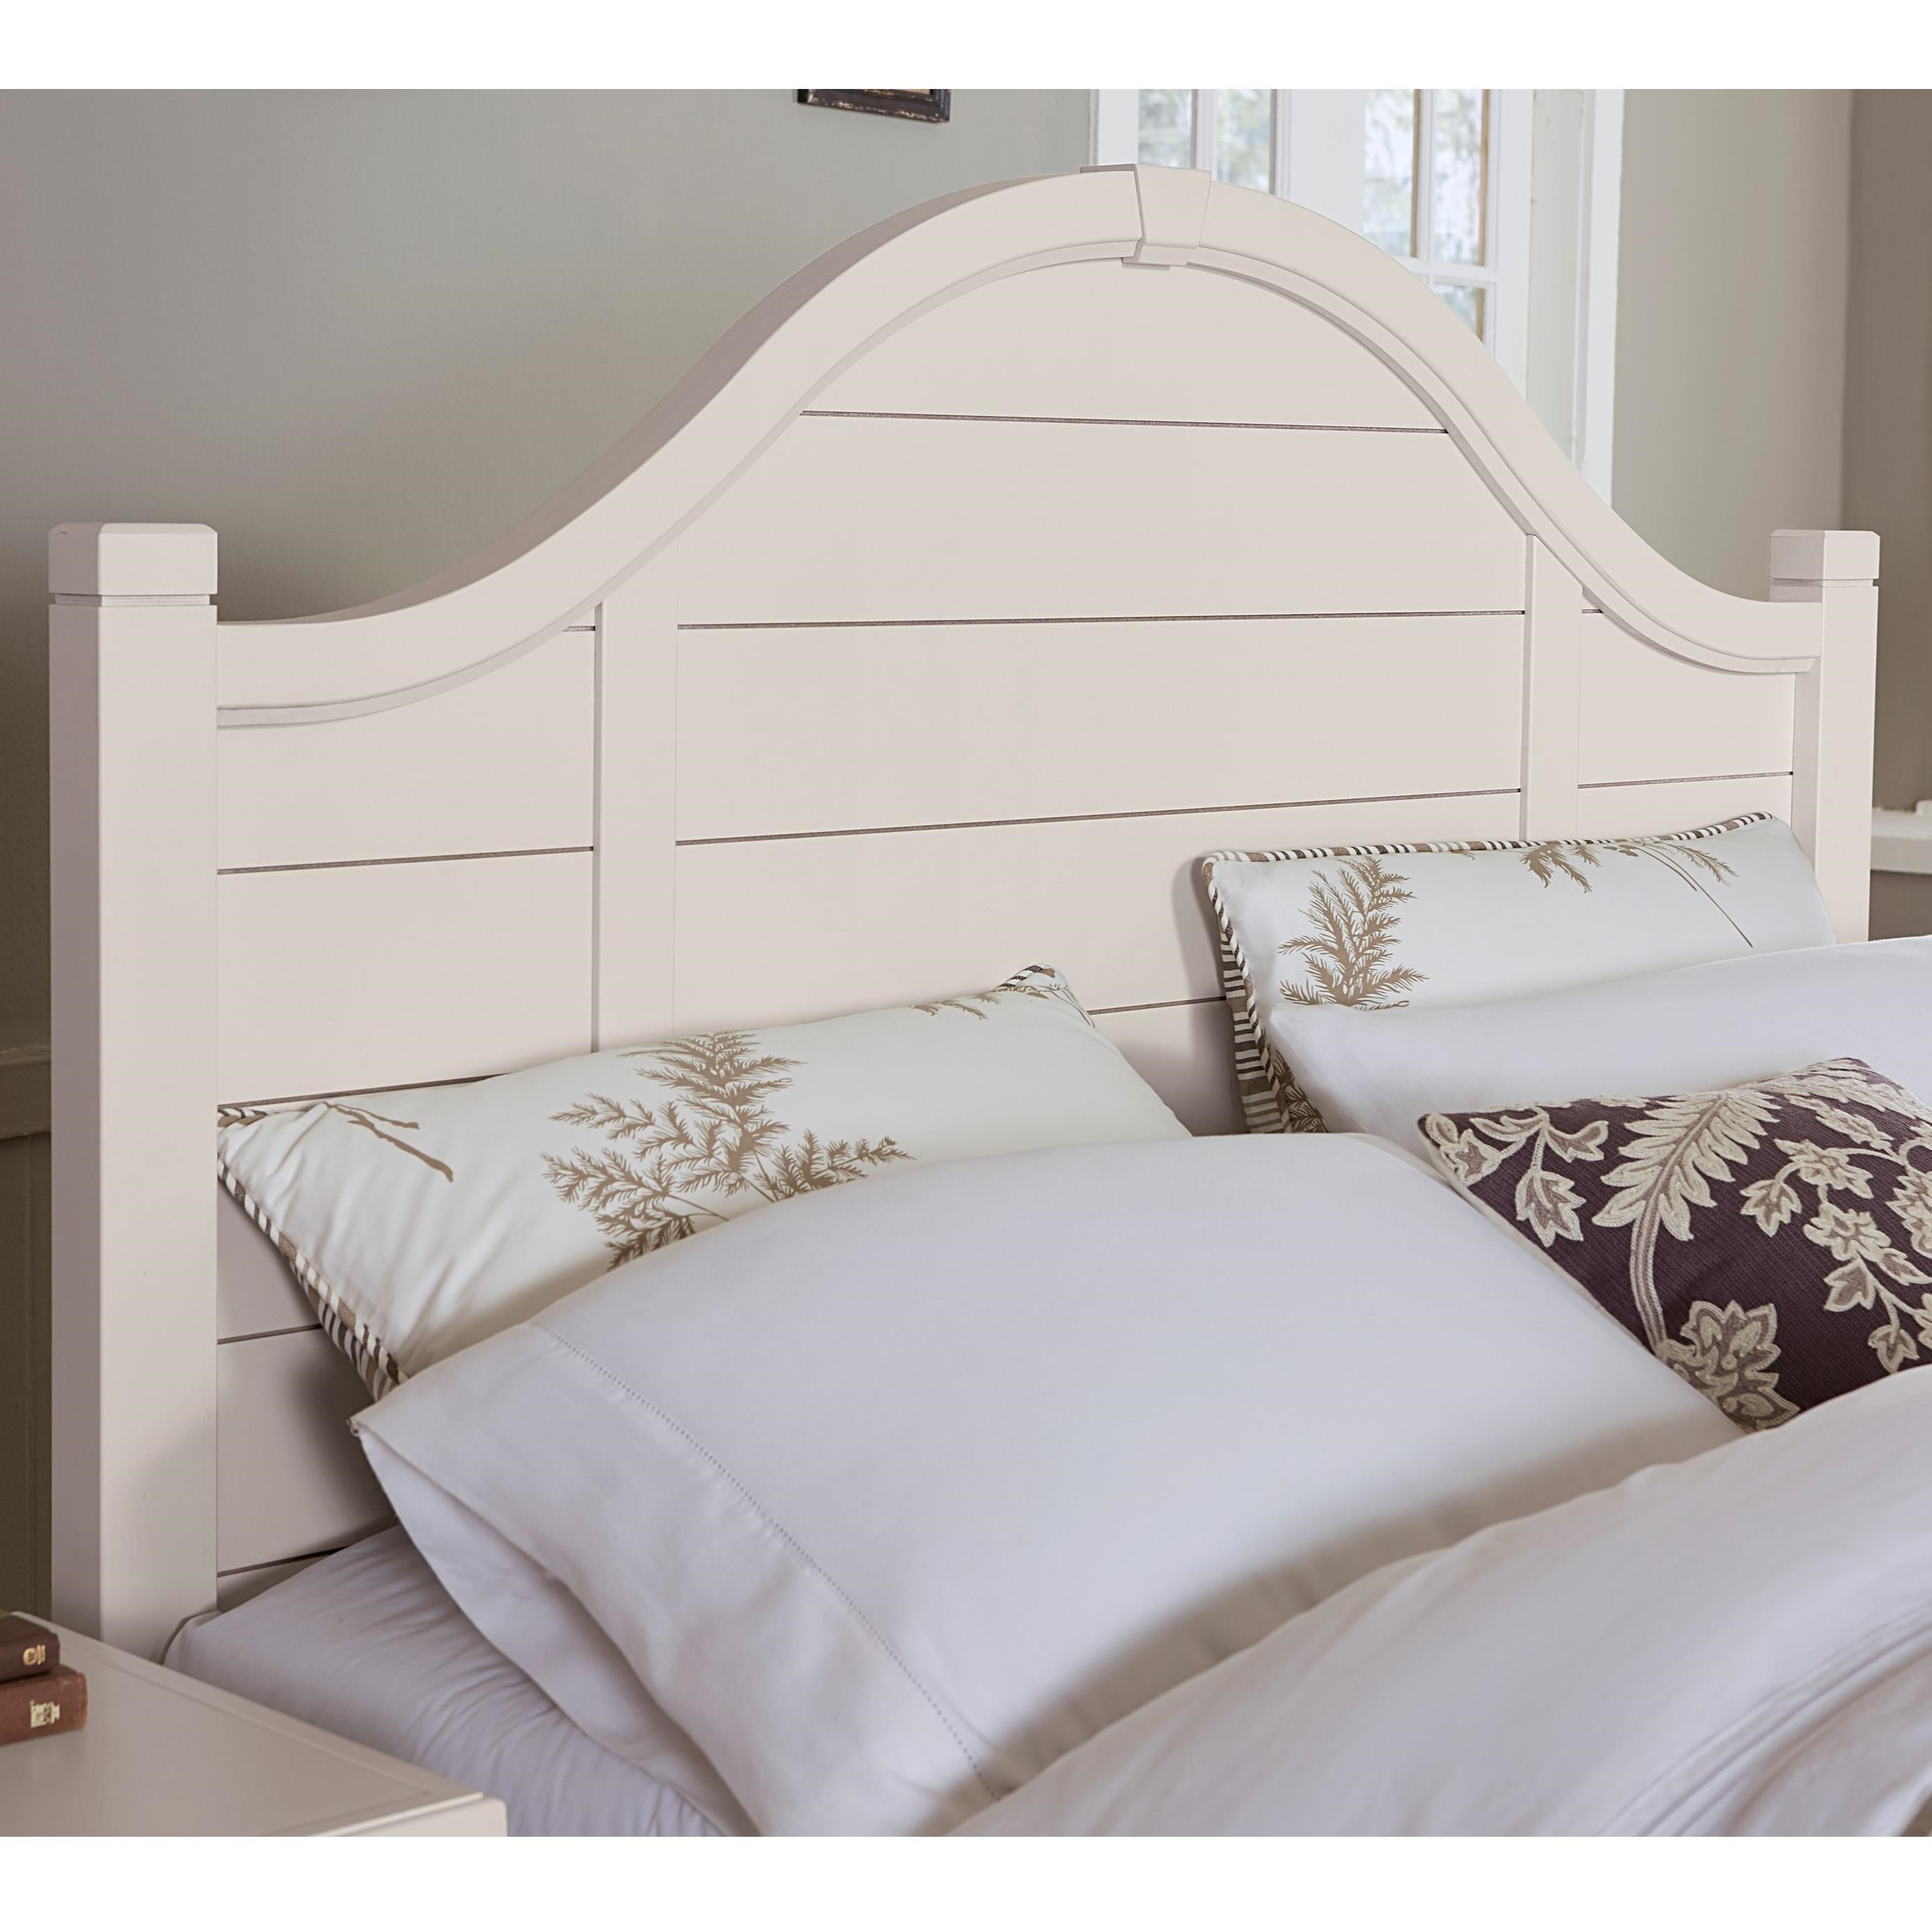 Bungalow Full Arch Headboard by Laurel Mercantile Co. at Suburban Furniture